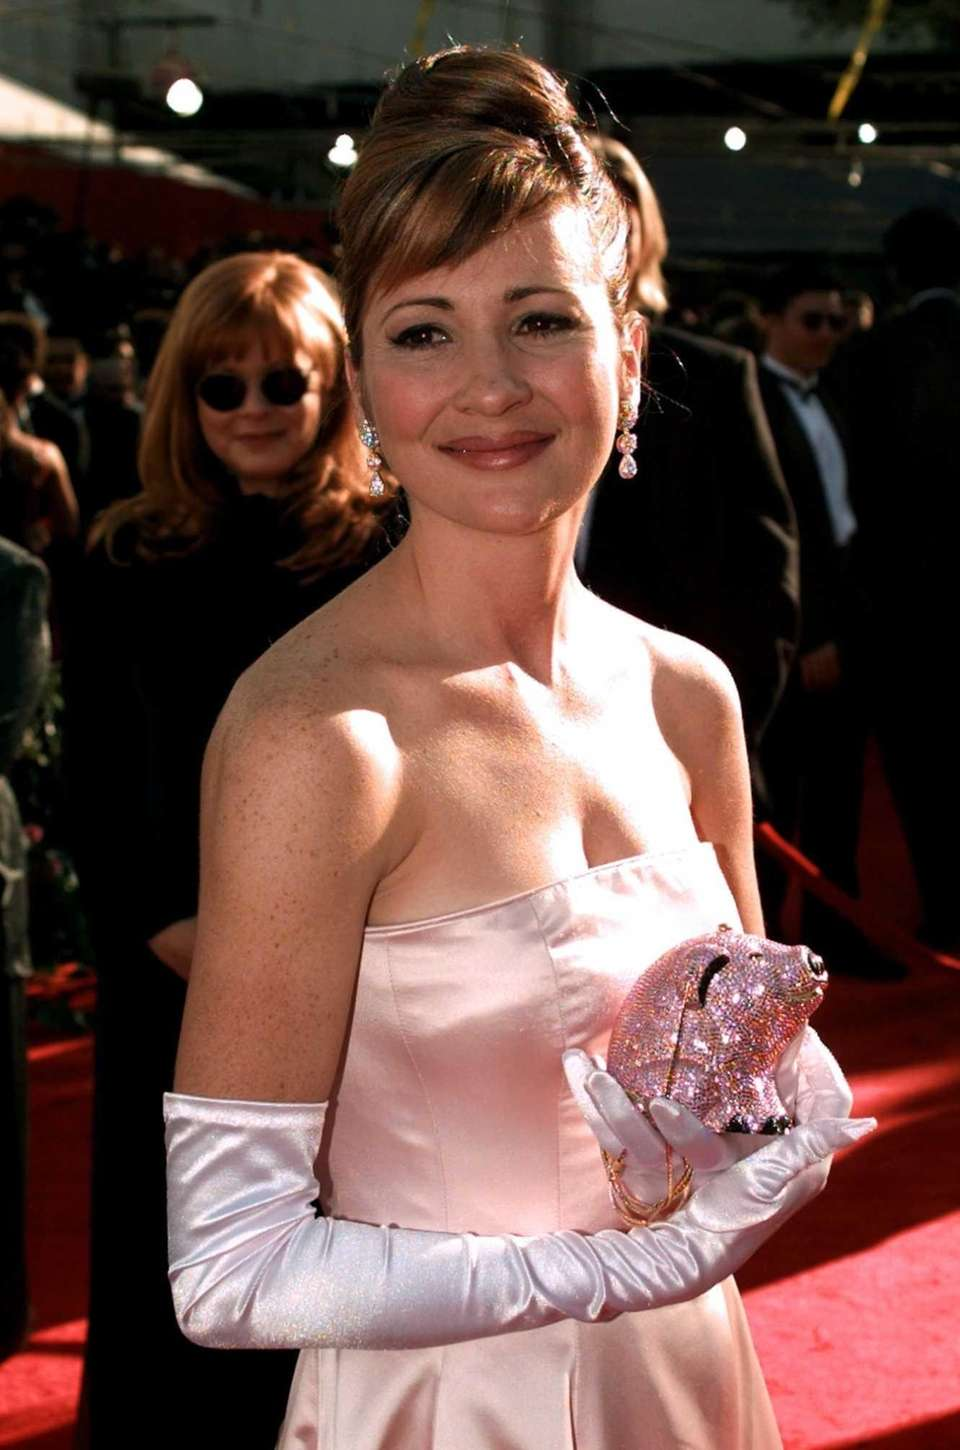 Christine Cavanaugh (Aug. 16, 1963 -- Dec. 22,